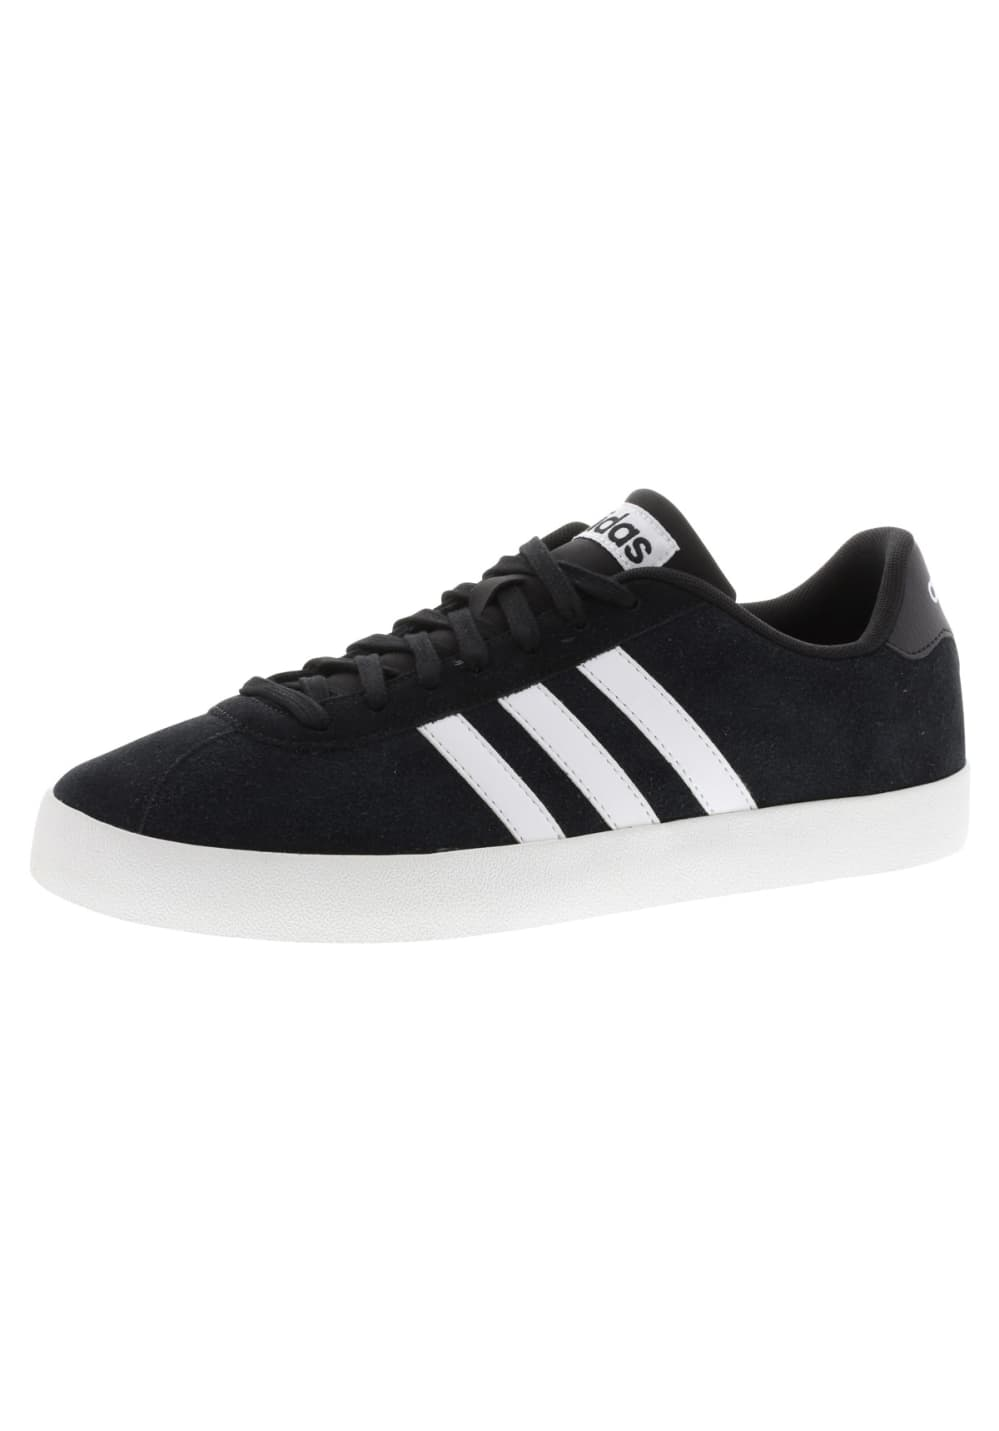 sports shoes 1f25d bf7f7 Next. adidas neo. VL Court ...